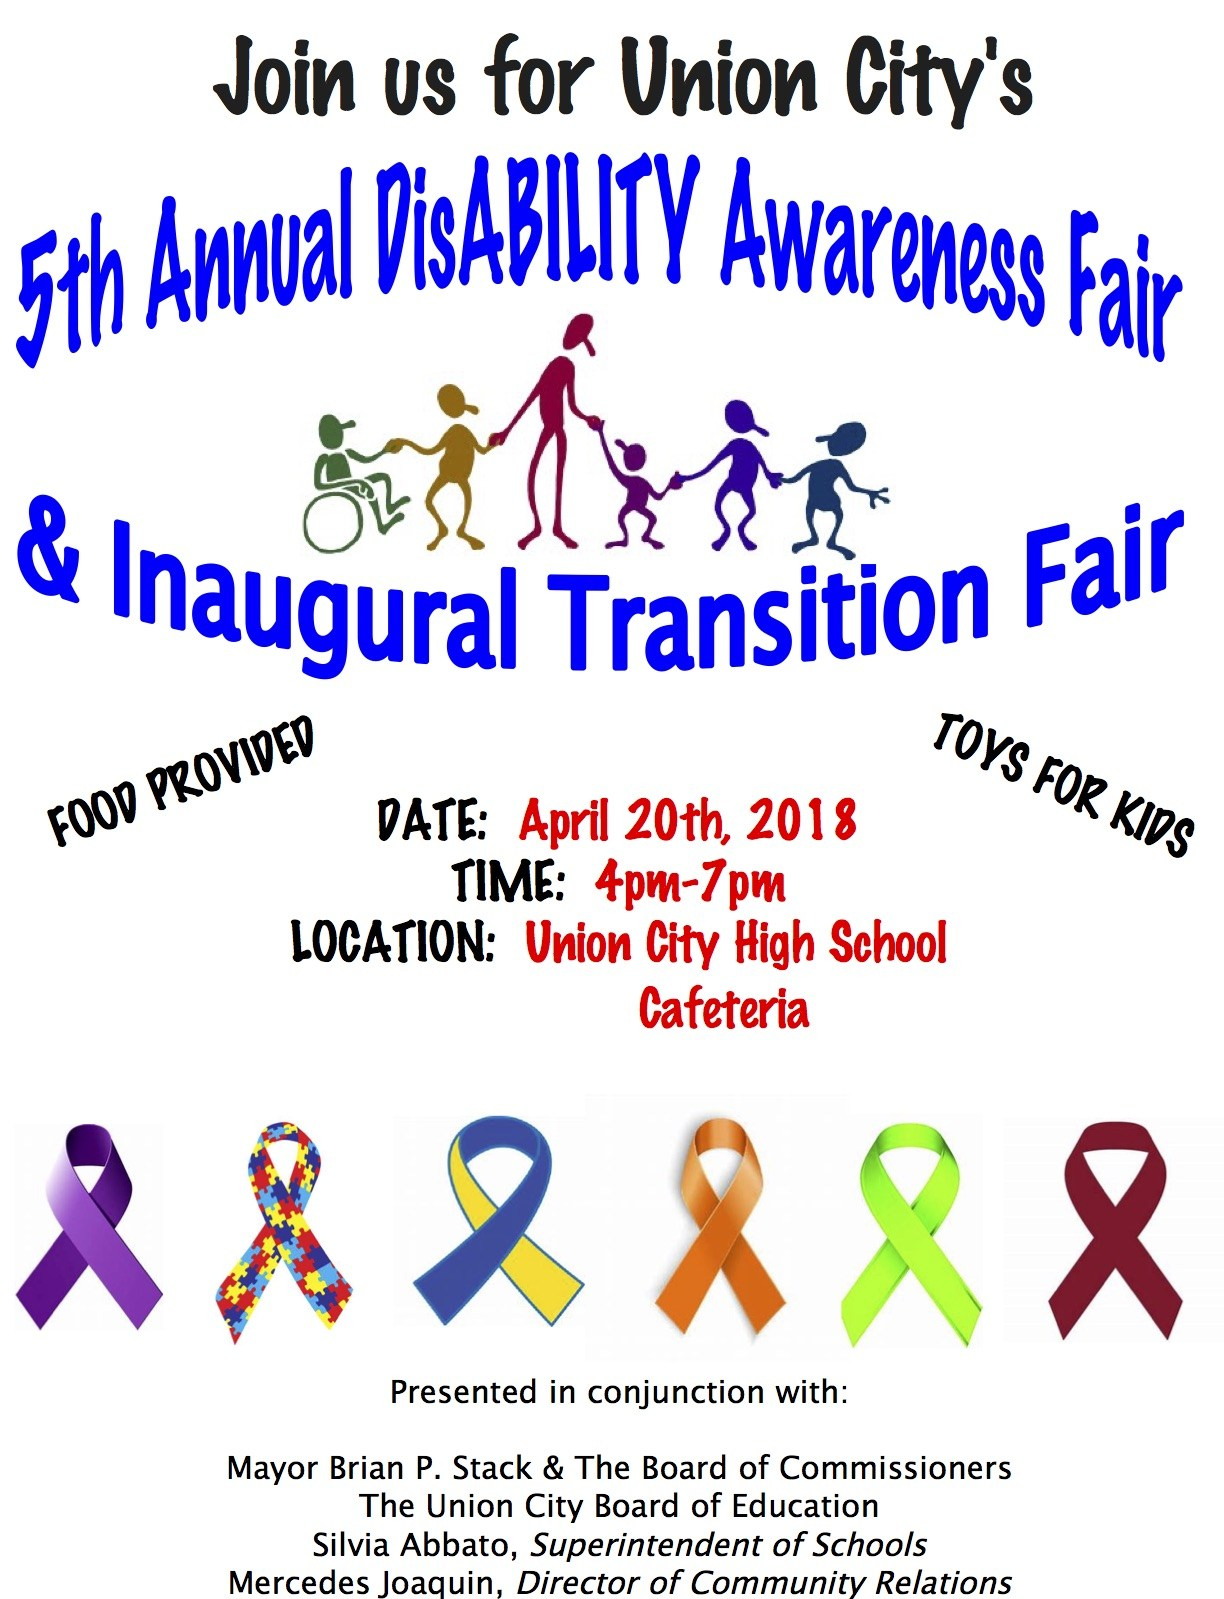 Disability Awareness Fair Flyer